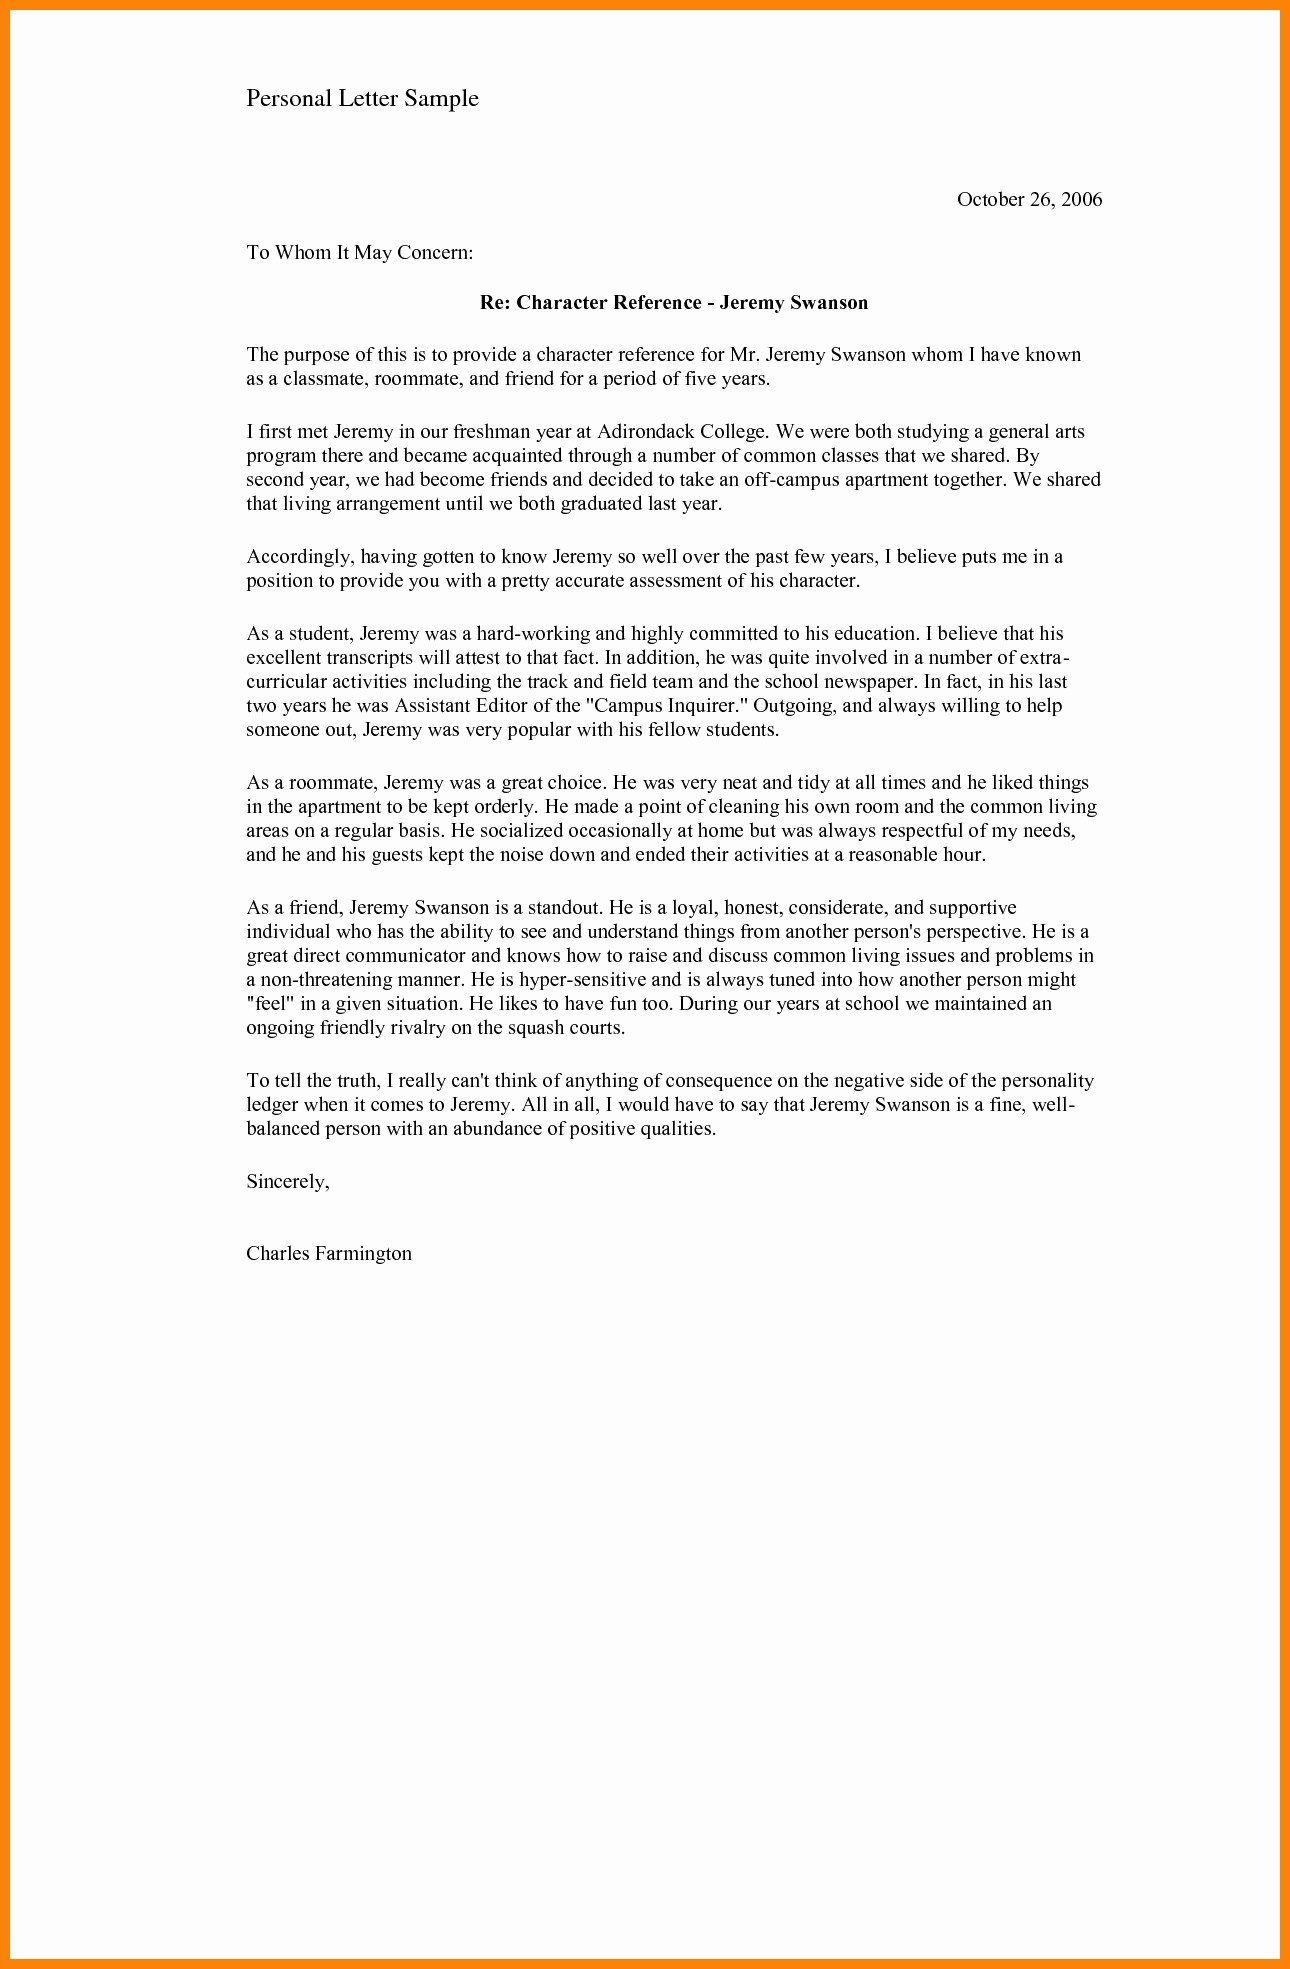 Reference Letter for Friend Character Template - Reference Letter format Personal Refrence Reference Letter format